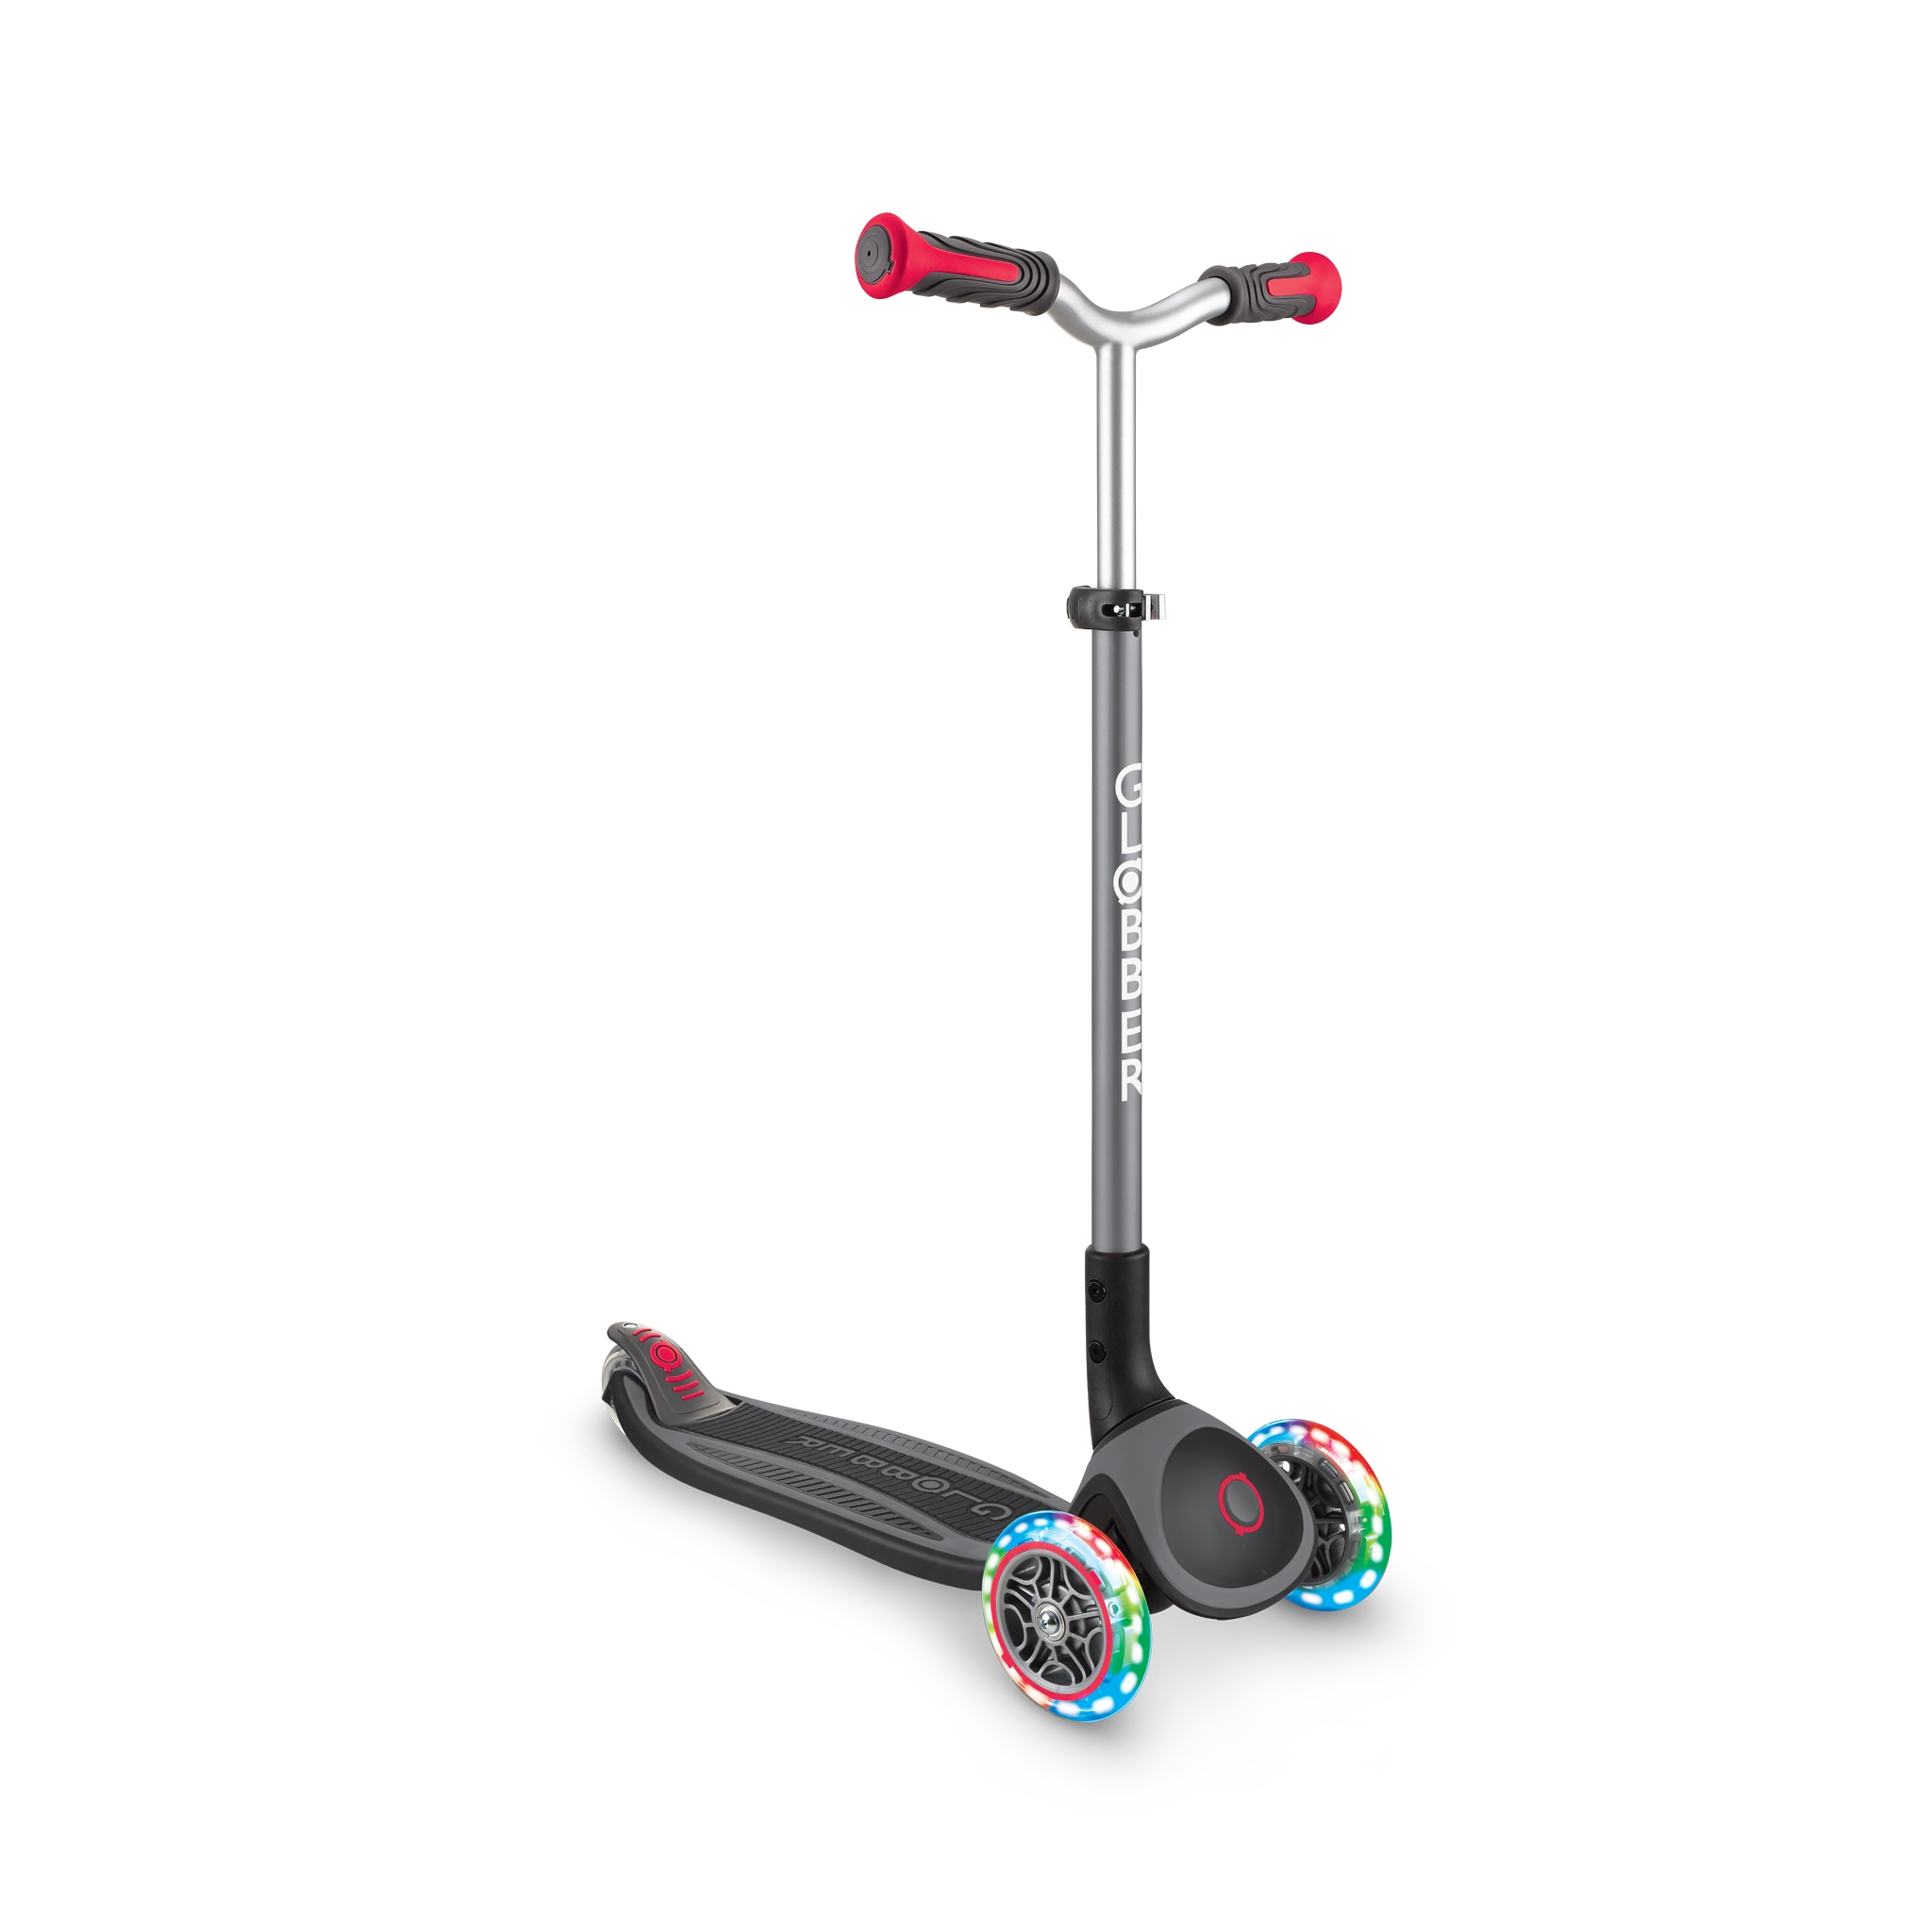 Globber-MASTER-LIGHTS-premium-3-wheel-foldable-light-up-scooter-for-kids-aged-4-to-14_black-red